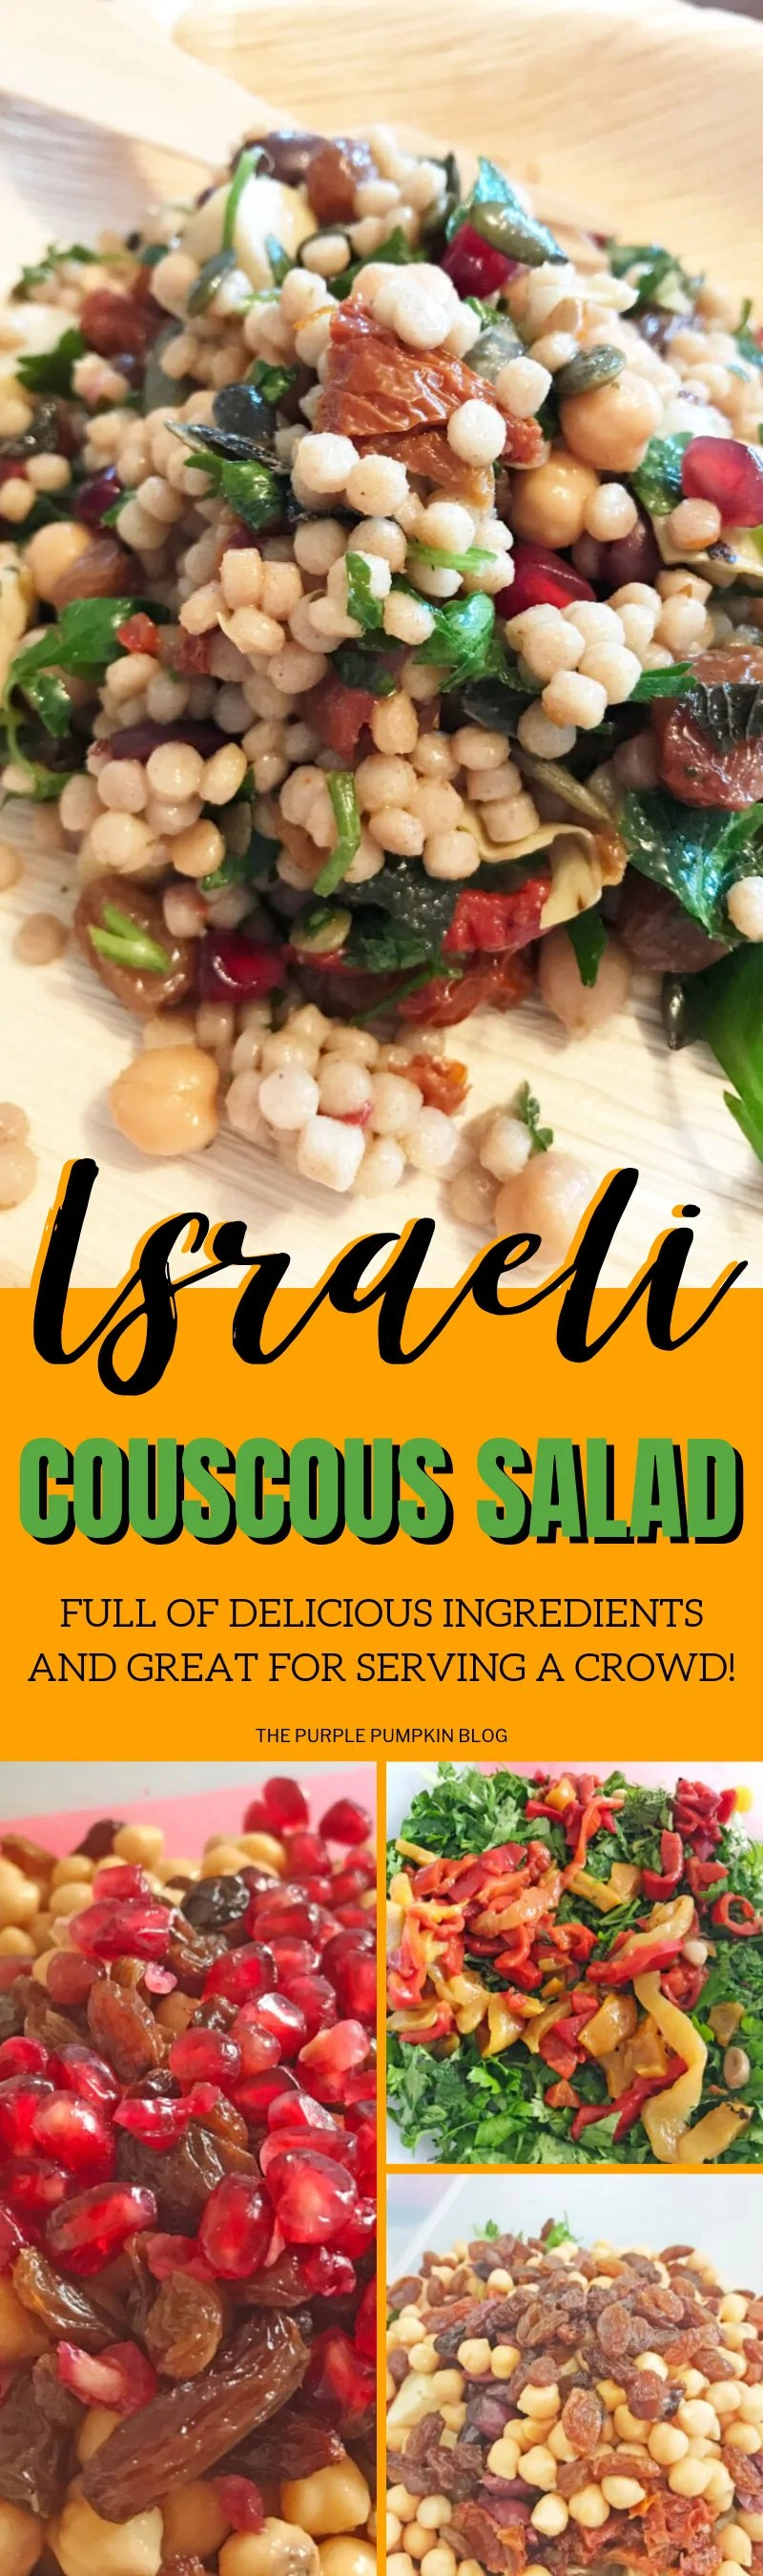 Pictures of couscous salad with text overlay saying: Israeli Couscous Salad. Full of delicious ingredients and great for serving a crowd!